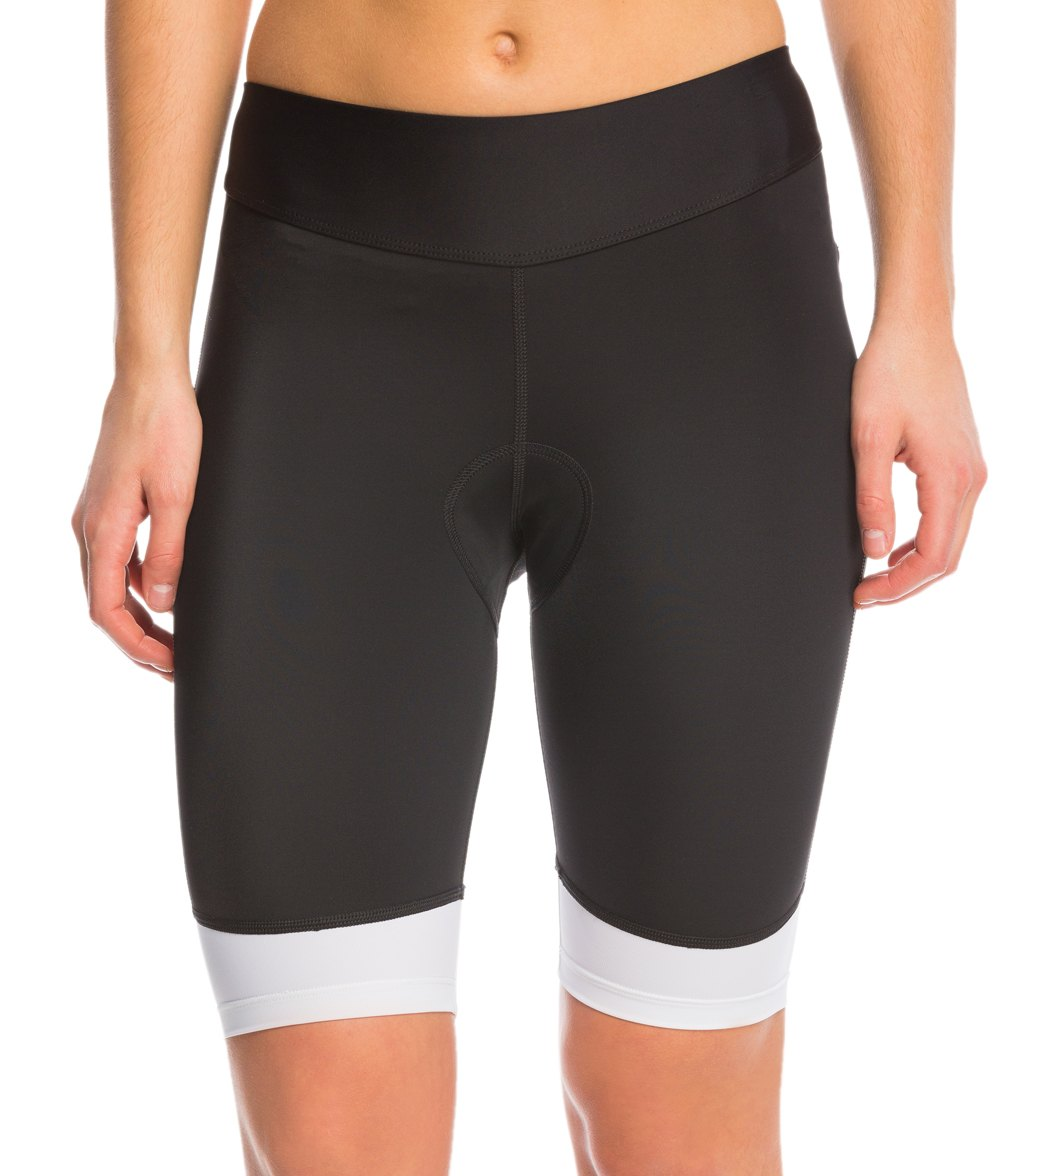 Canari Women s Melody Cycling Shorts at SwimOutlet.com - Free Shipping 1513a7523